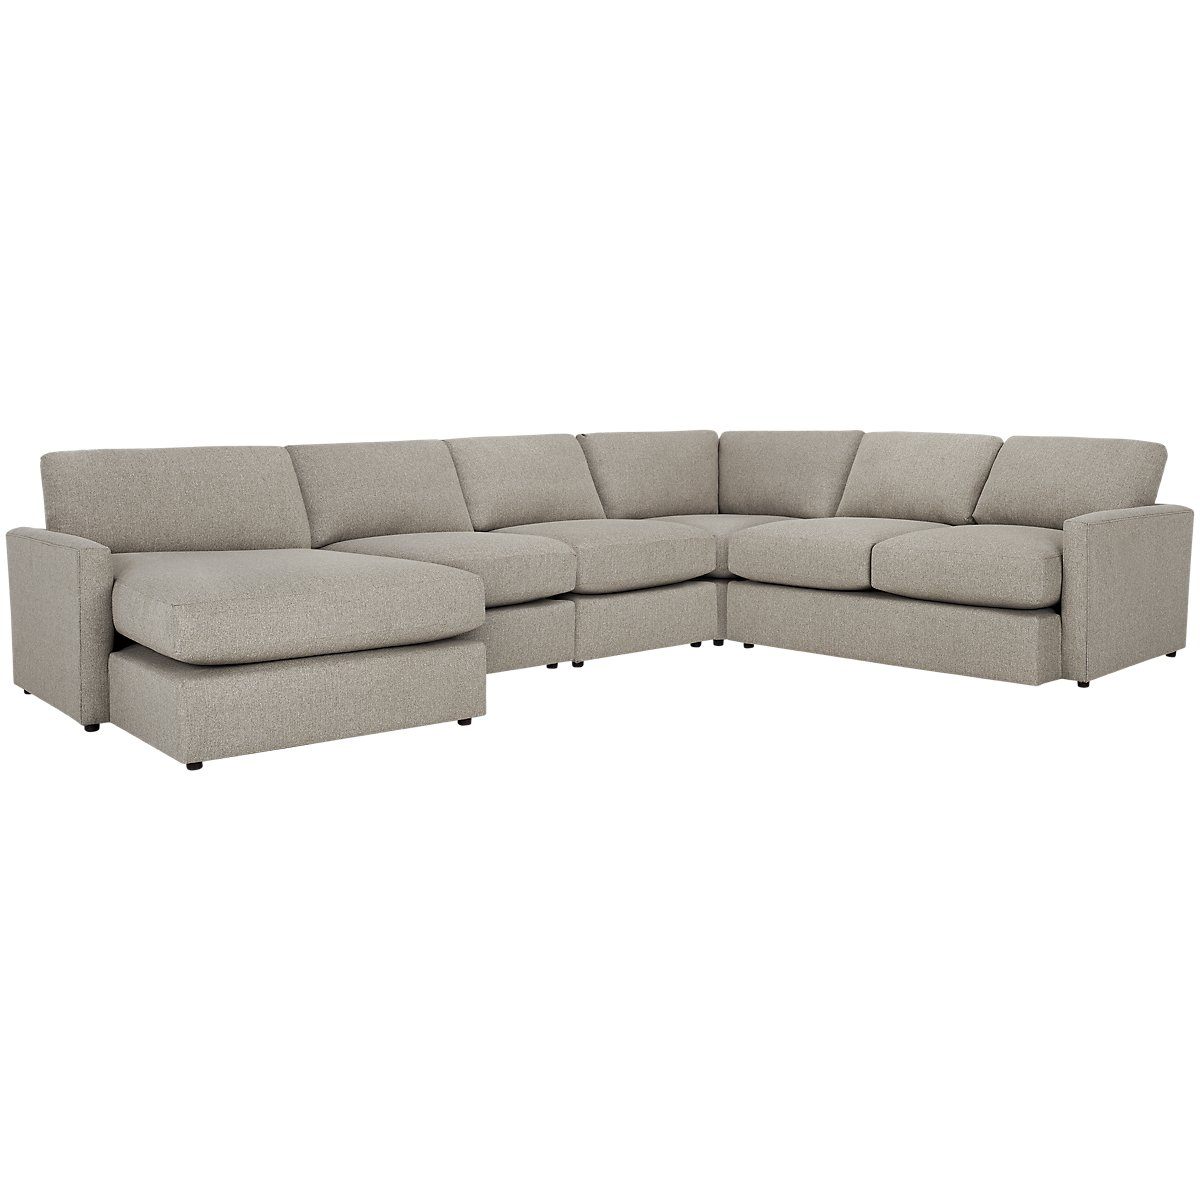 Noah Khaki Fabric Large Left Chaise Sectional